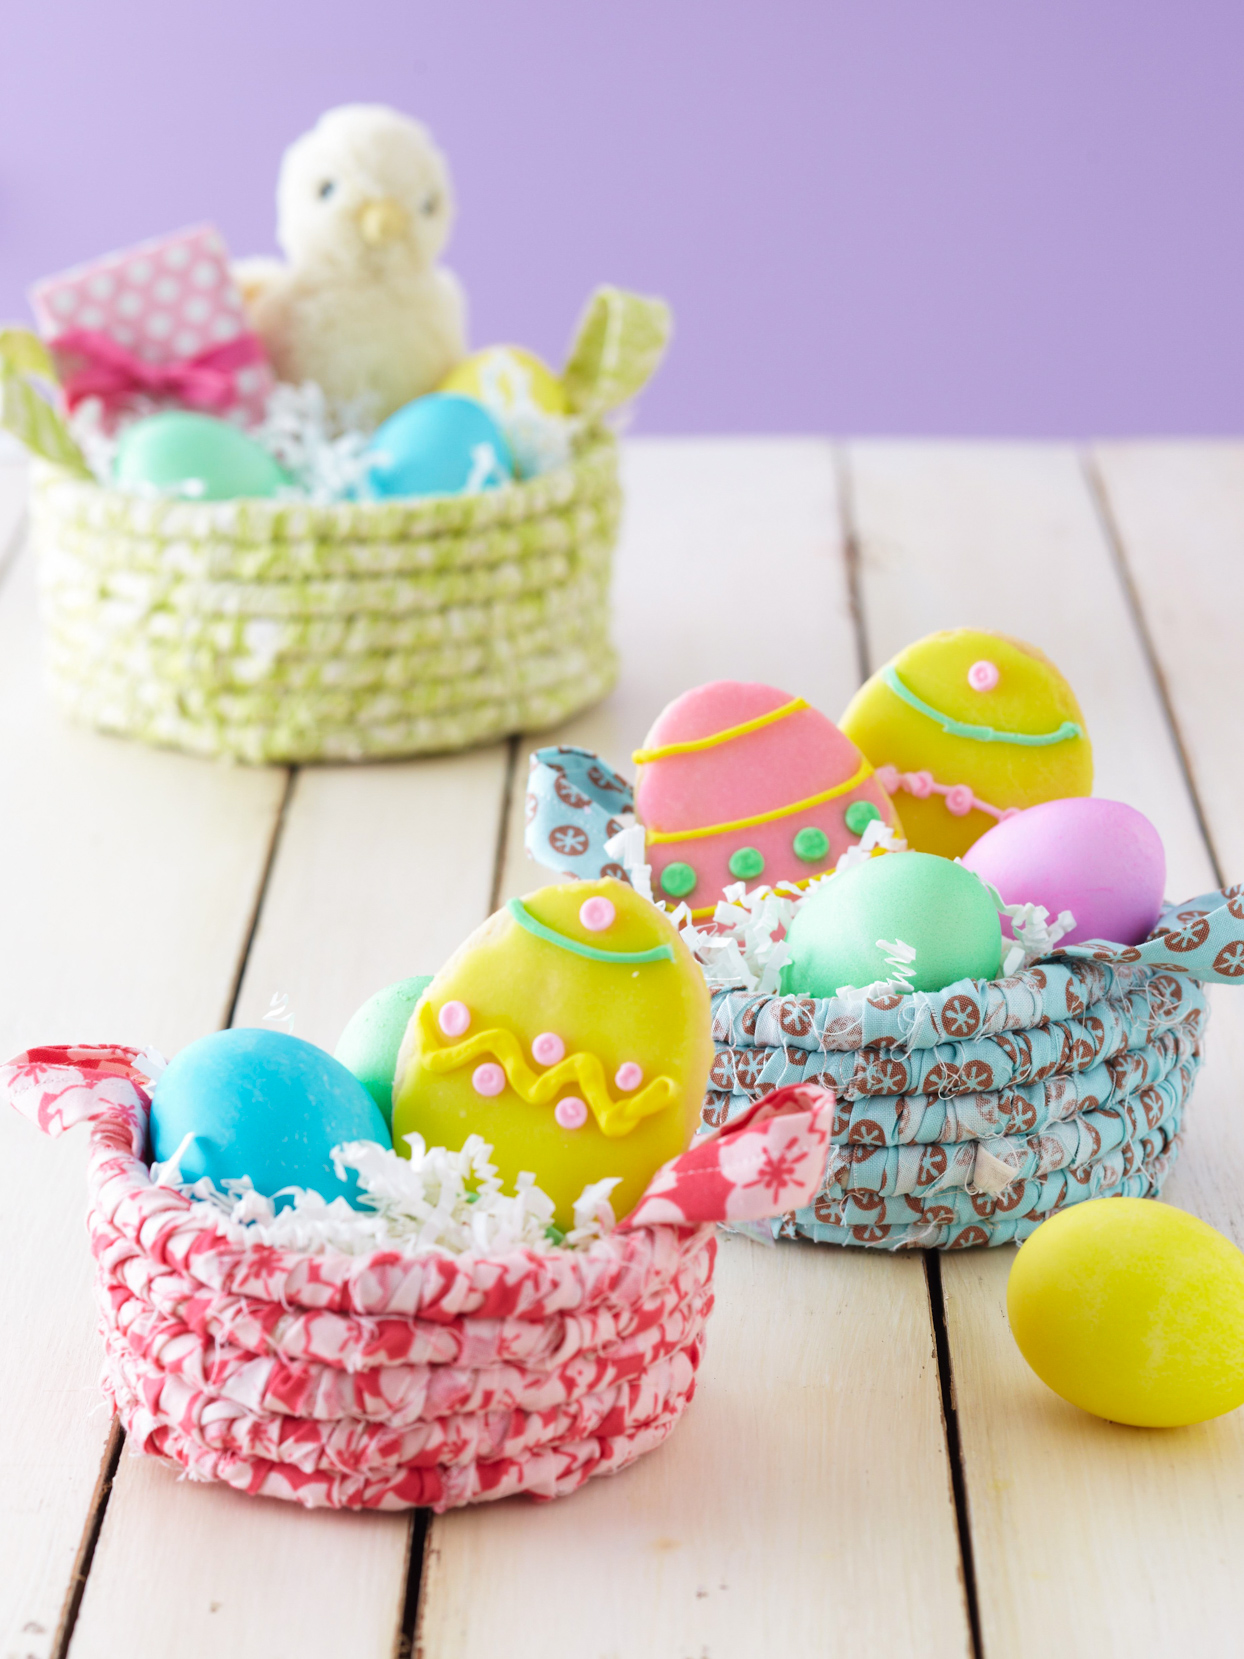 DIY colorful coiled fabric Easter baskets